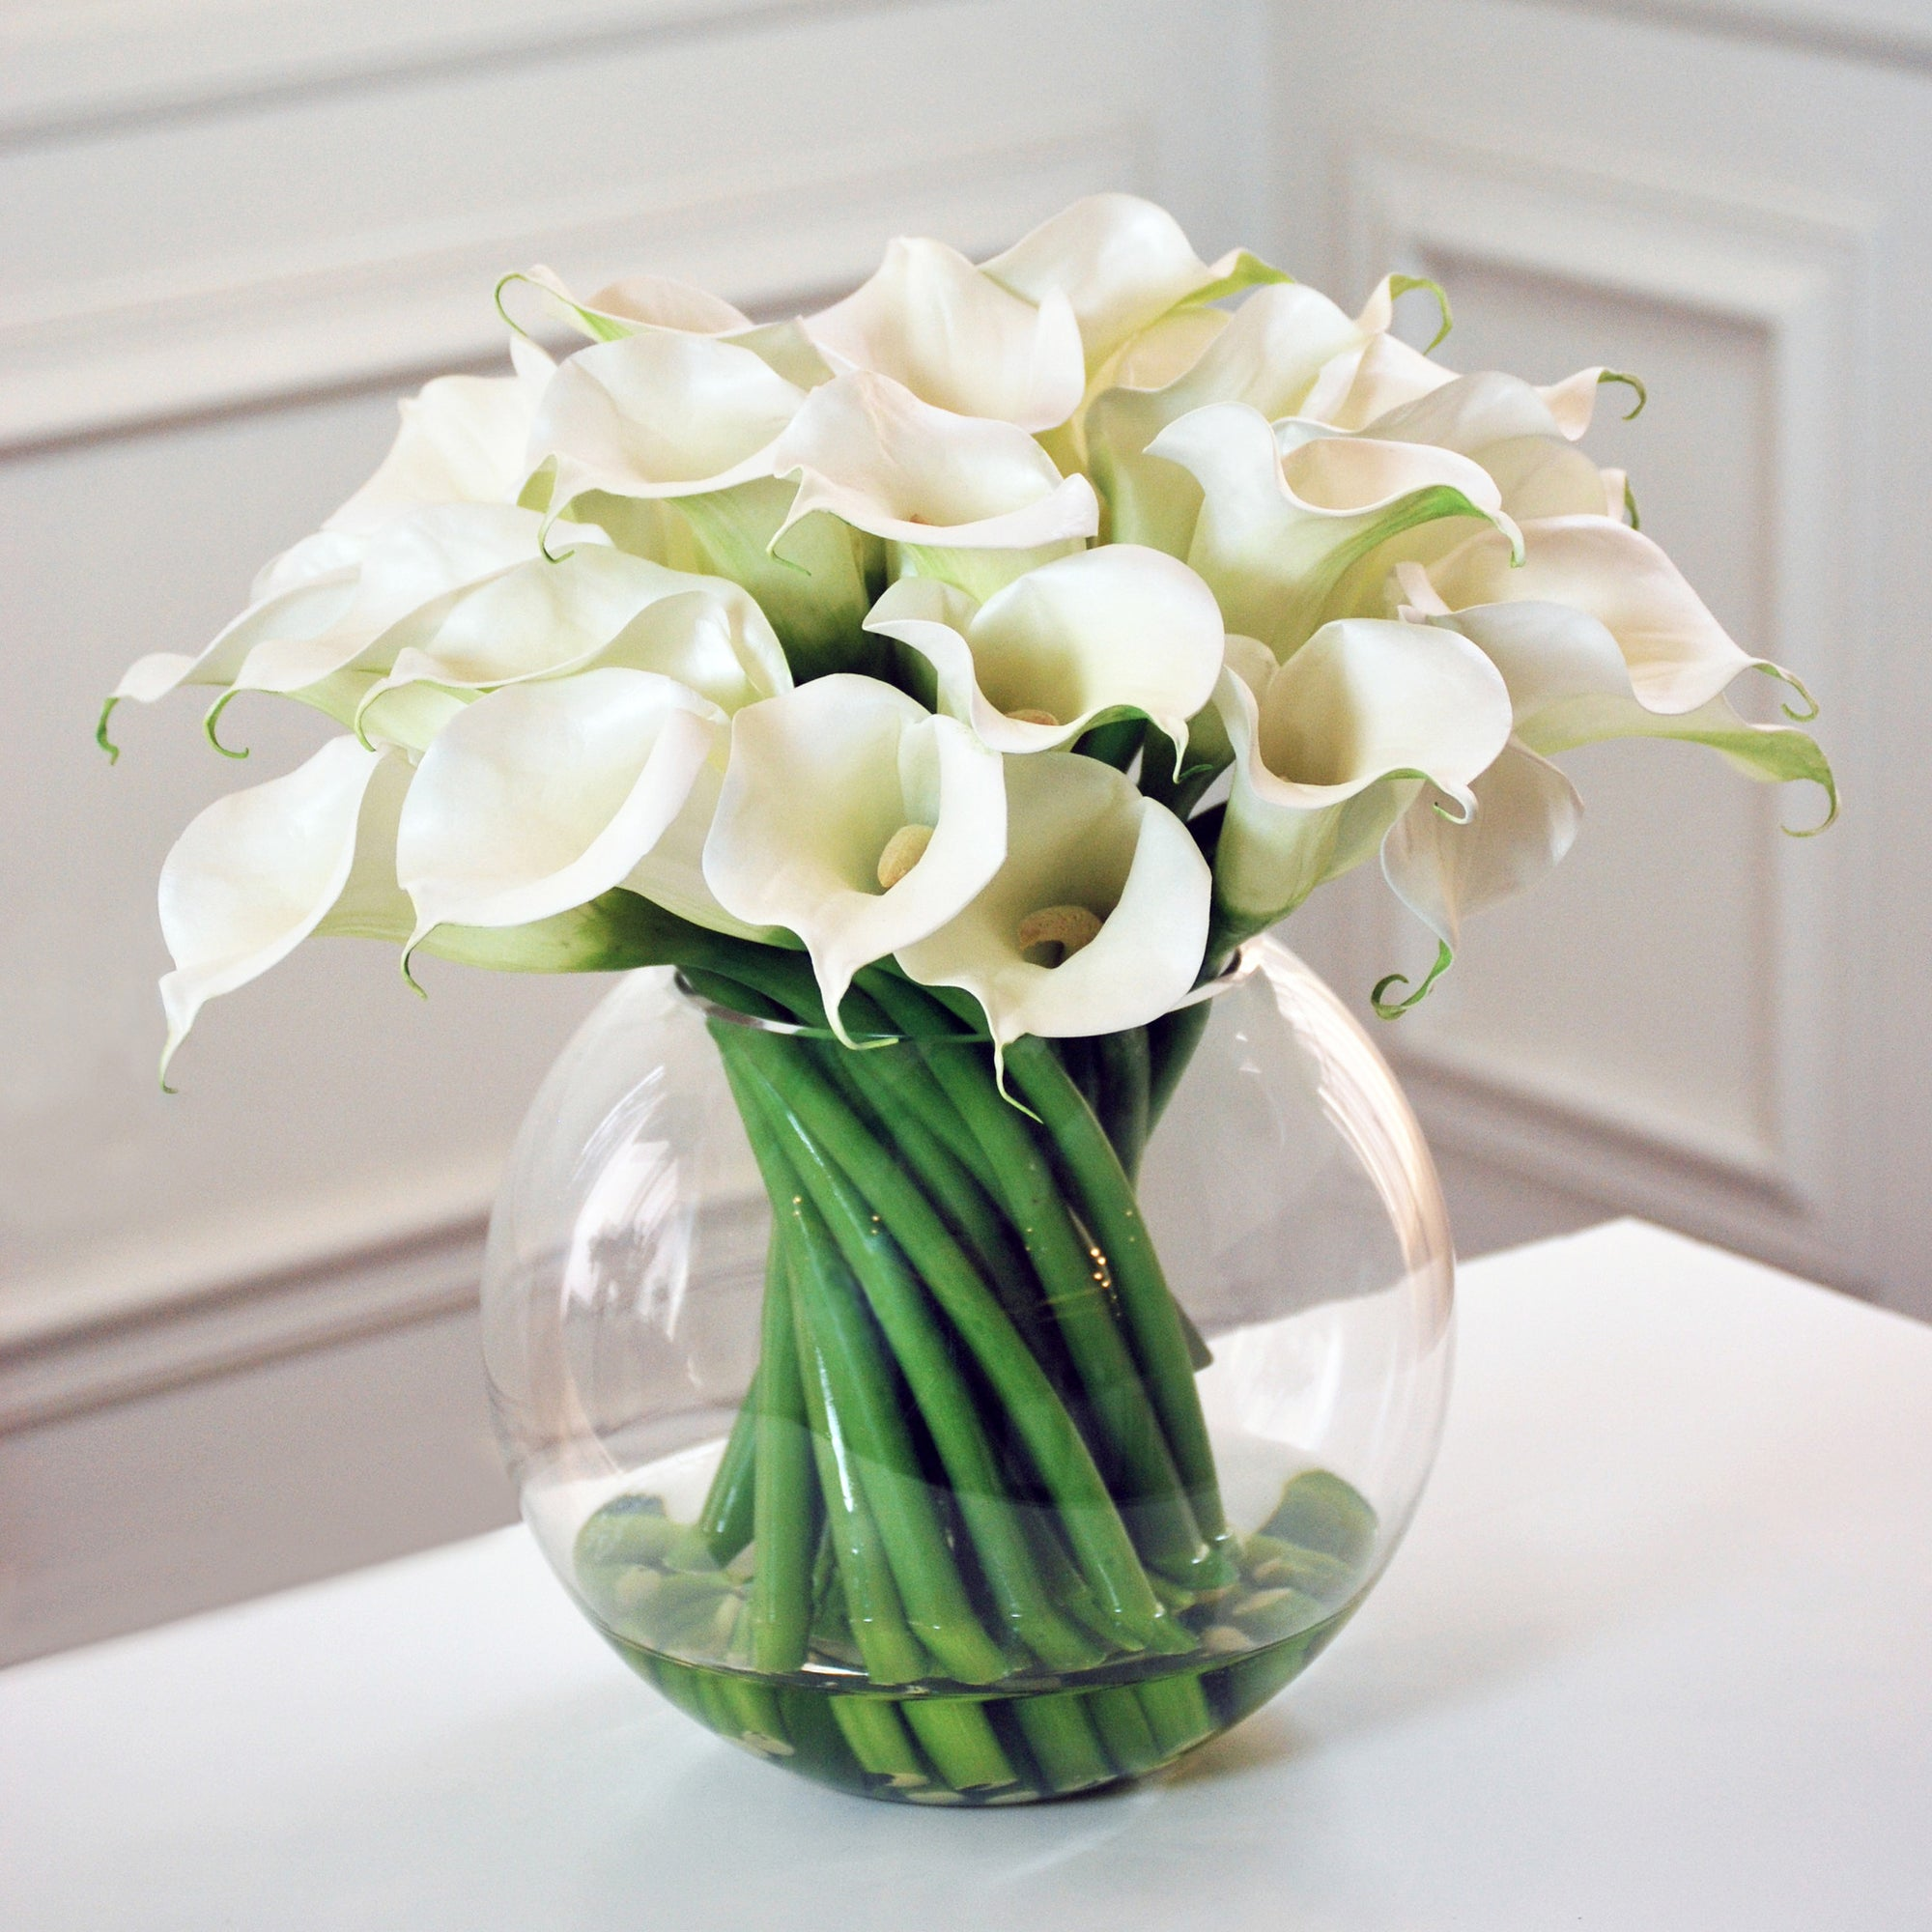 CONTEMPORARY CALLA LILY IN GLASS (WHJB363-WH) - Winward Home silk flower arrangements